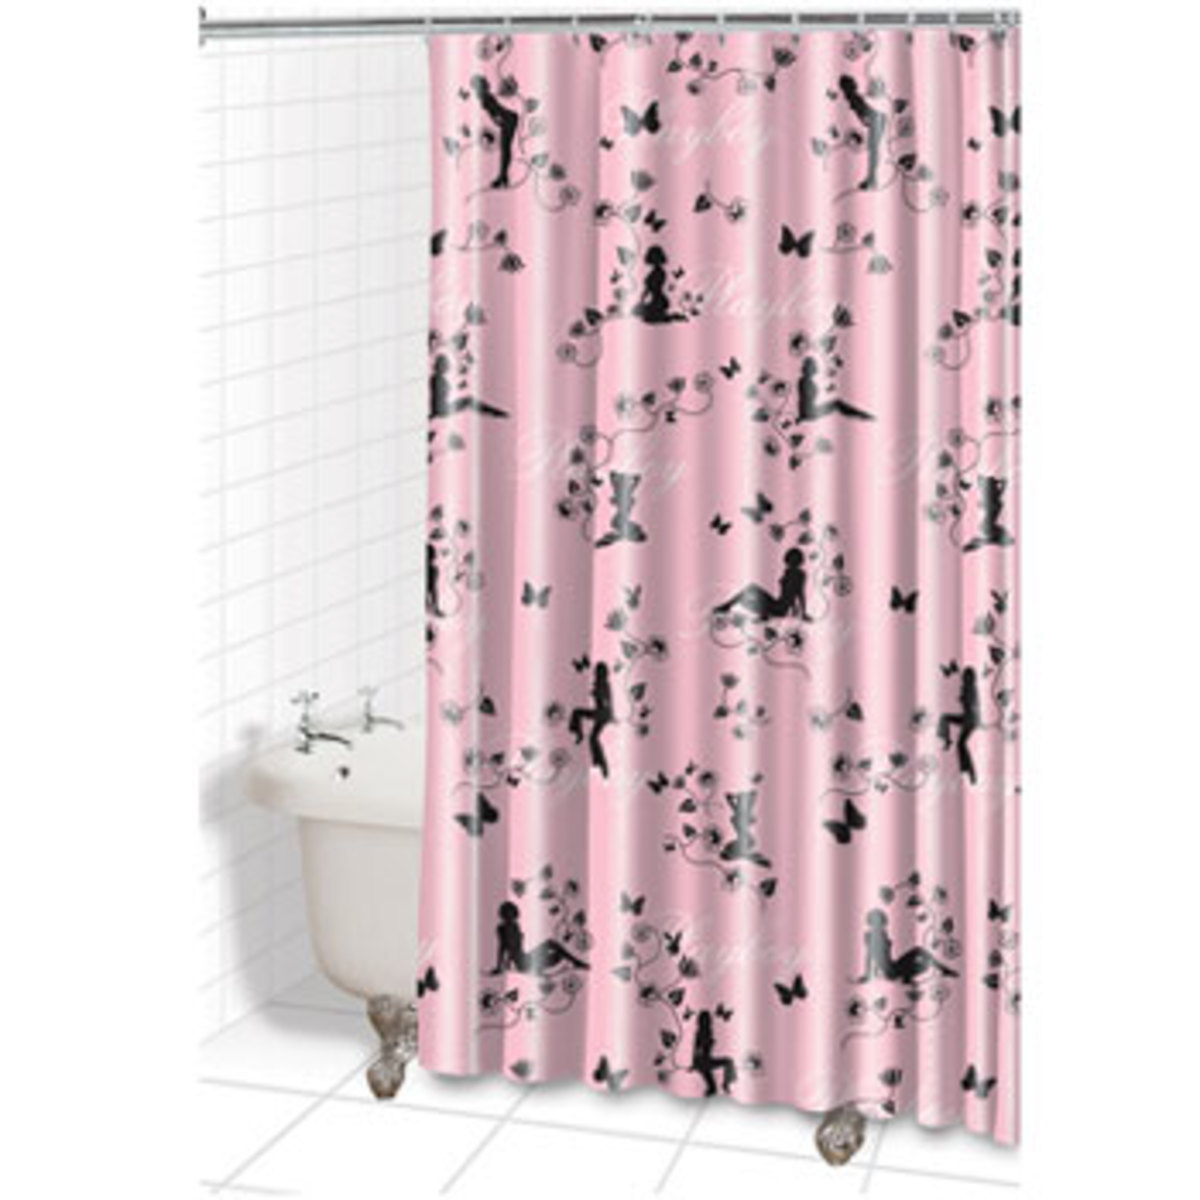 Playboy Pinup Shower Curtain